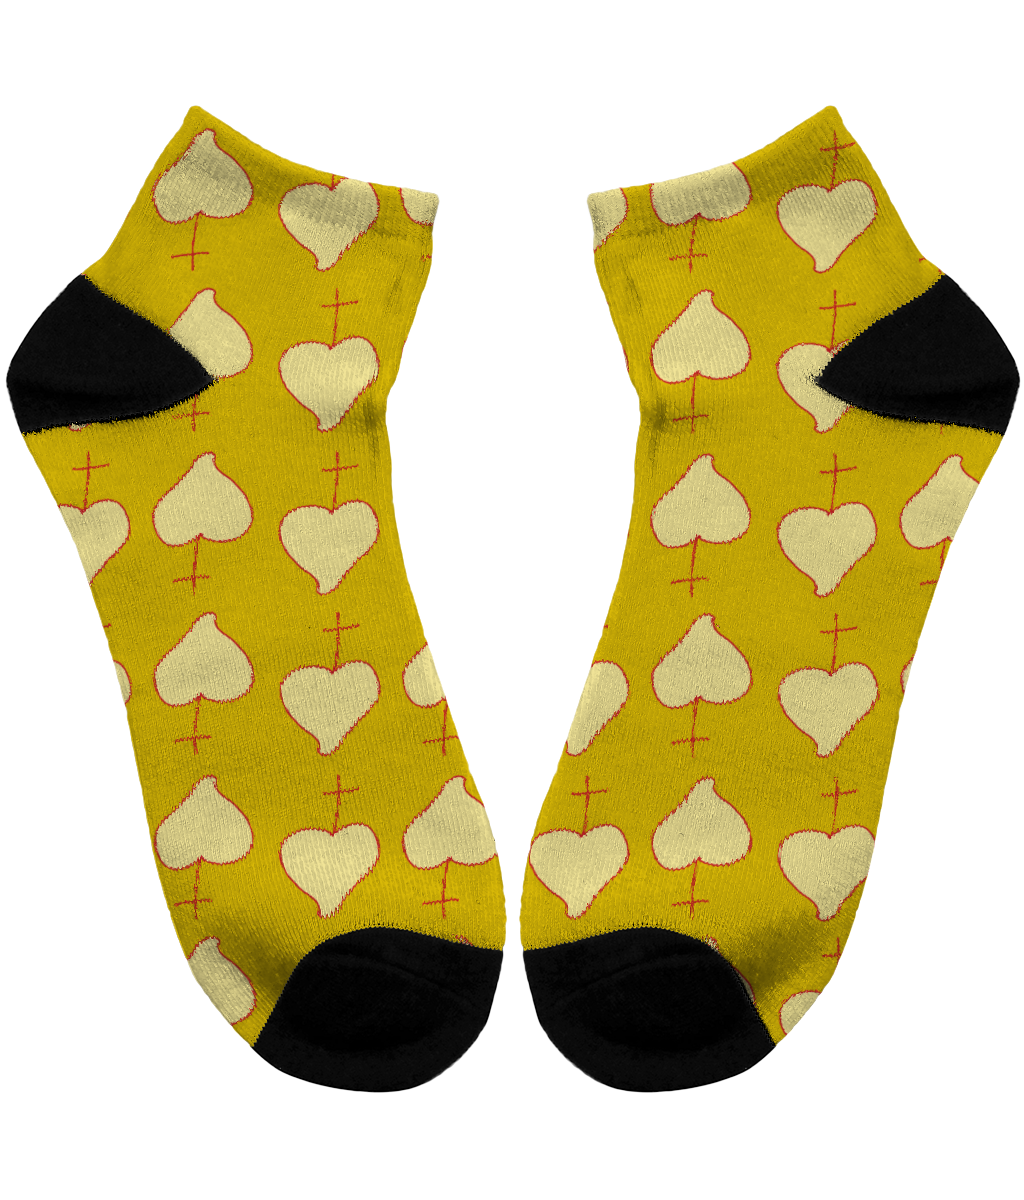 Women's Socks - CRUX